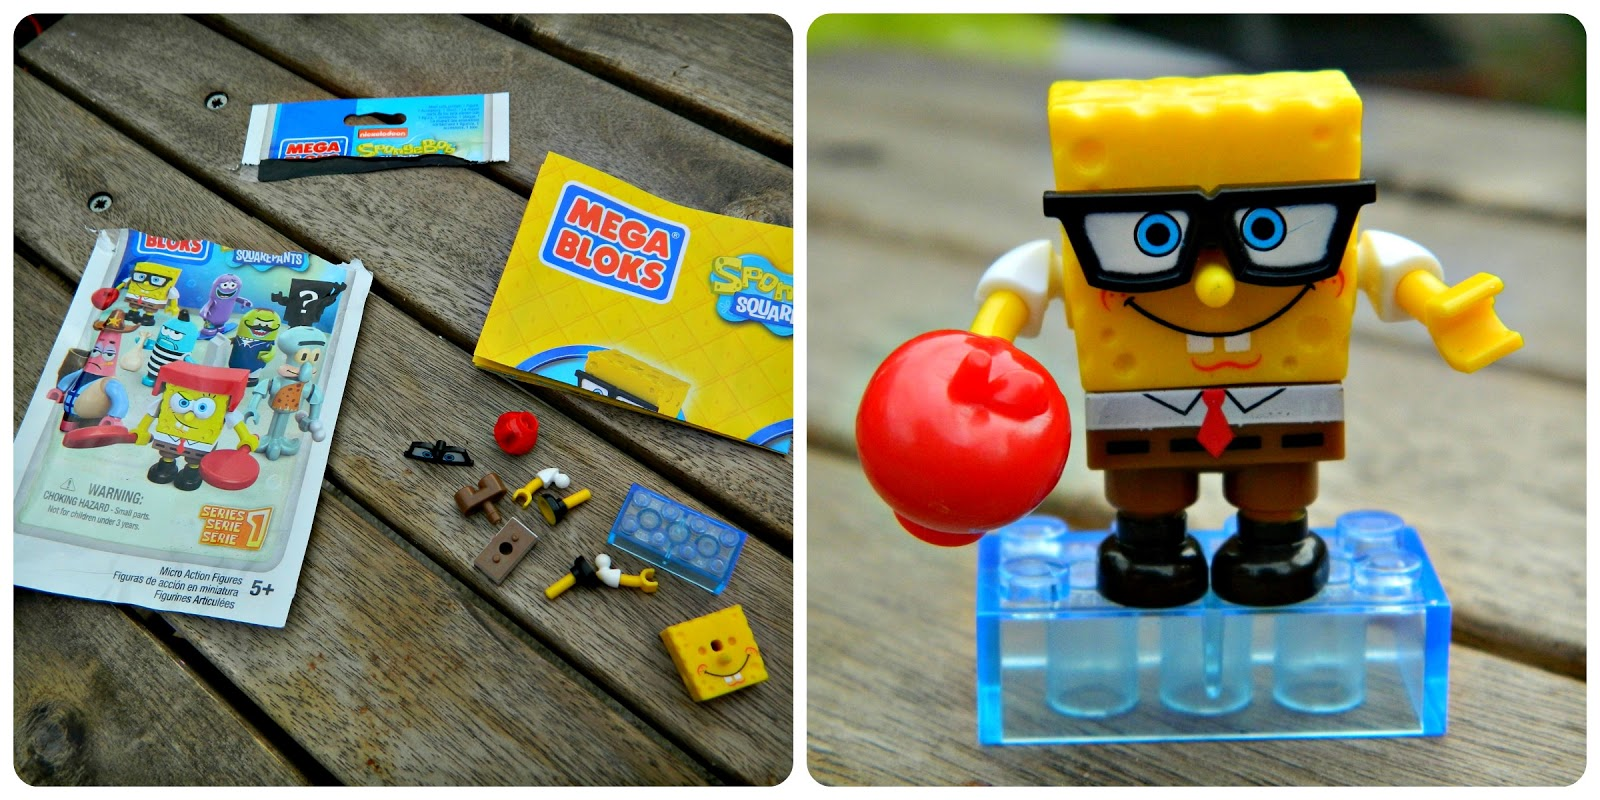 Spongebob Squarepants Mega Bloks Series 1 Blind Bag